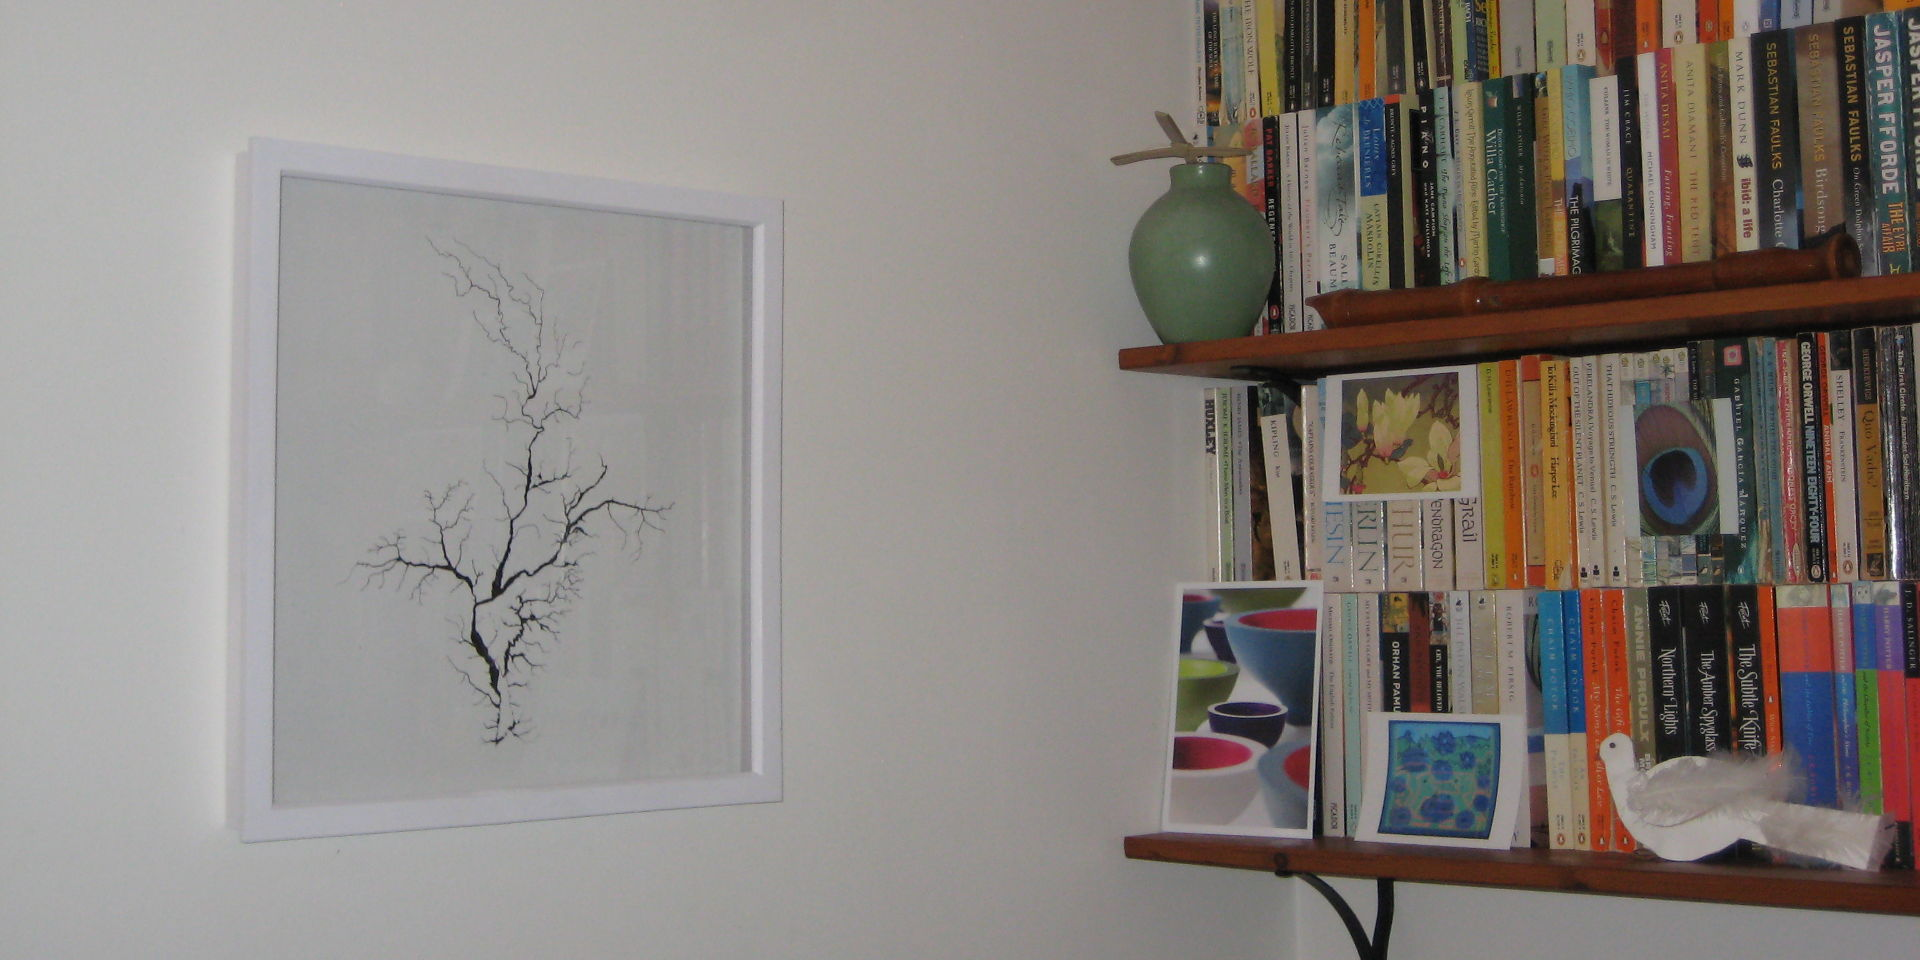 Prints and greetings cards on sale in the shop